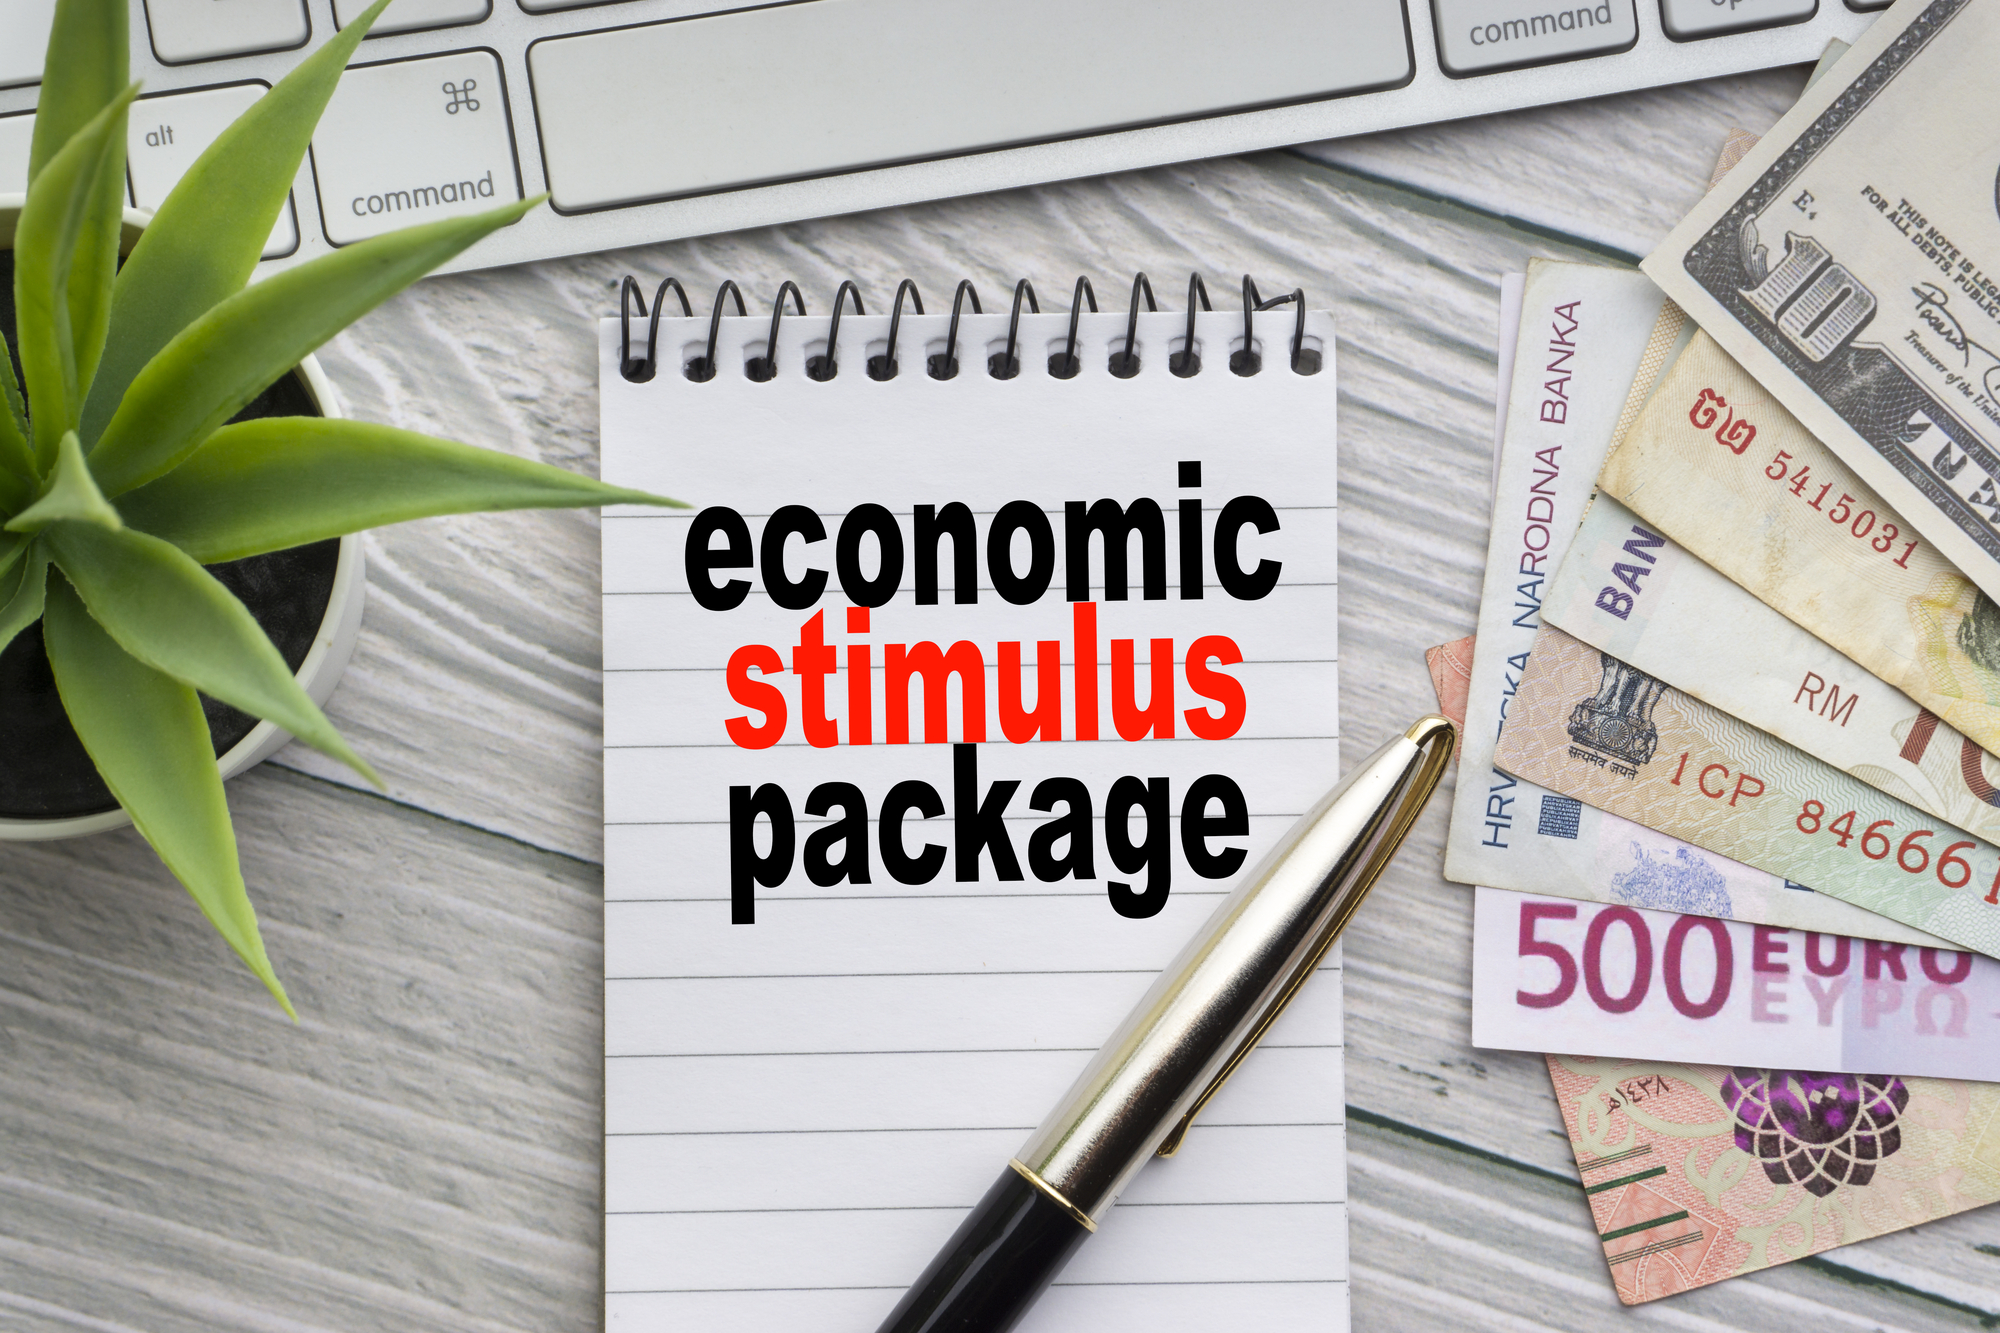 ECONOMIC STIMULUS PACKAGE text with notepad, keyboard, decorative vase, fountain pen, calculator and banknotes currency on wooden background